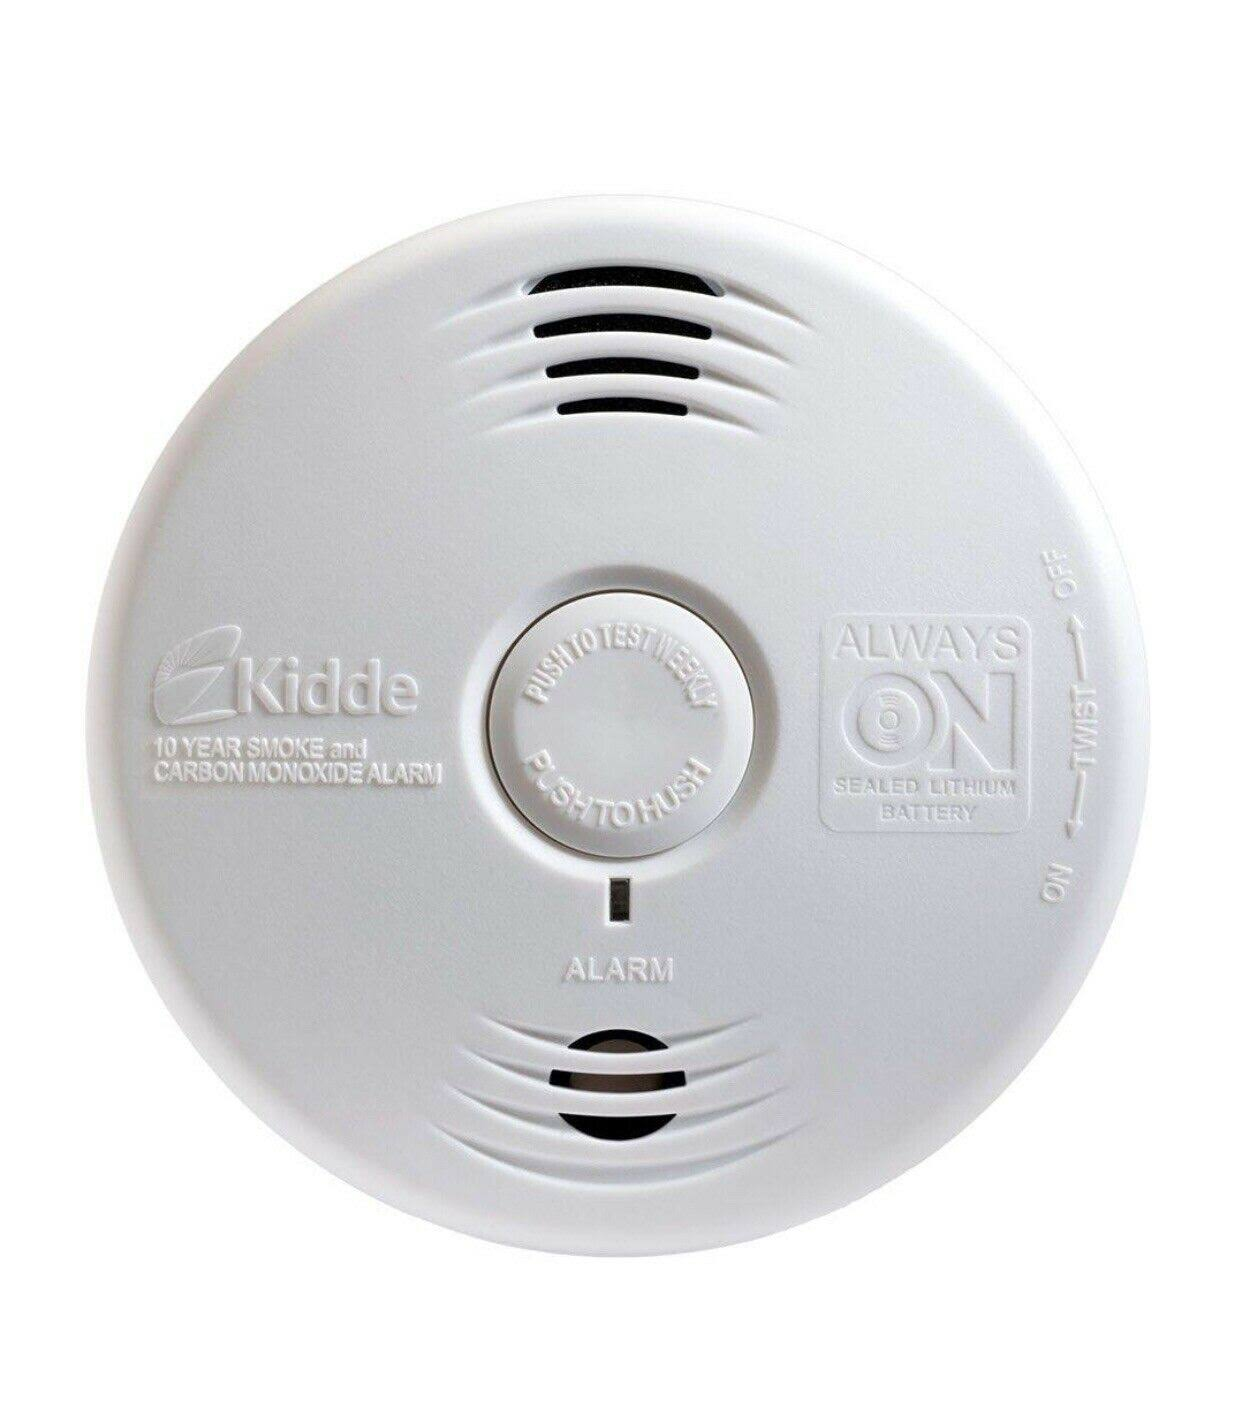 Kidde Worry Smoke and Carbon Monoxide Alarm